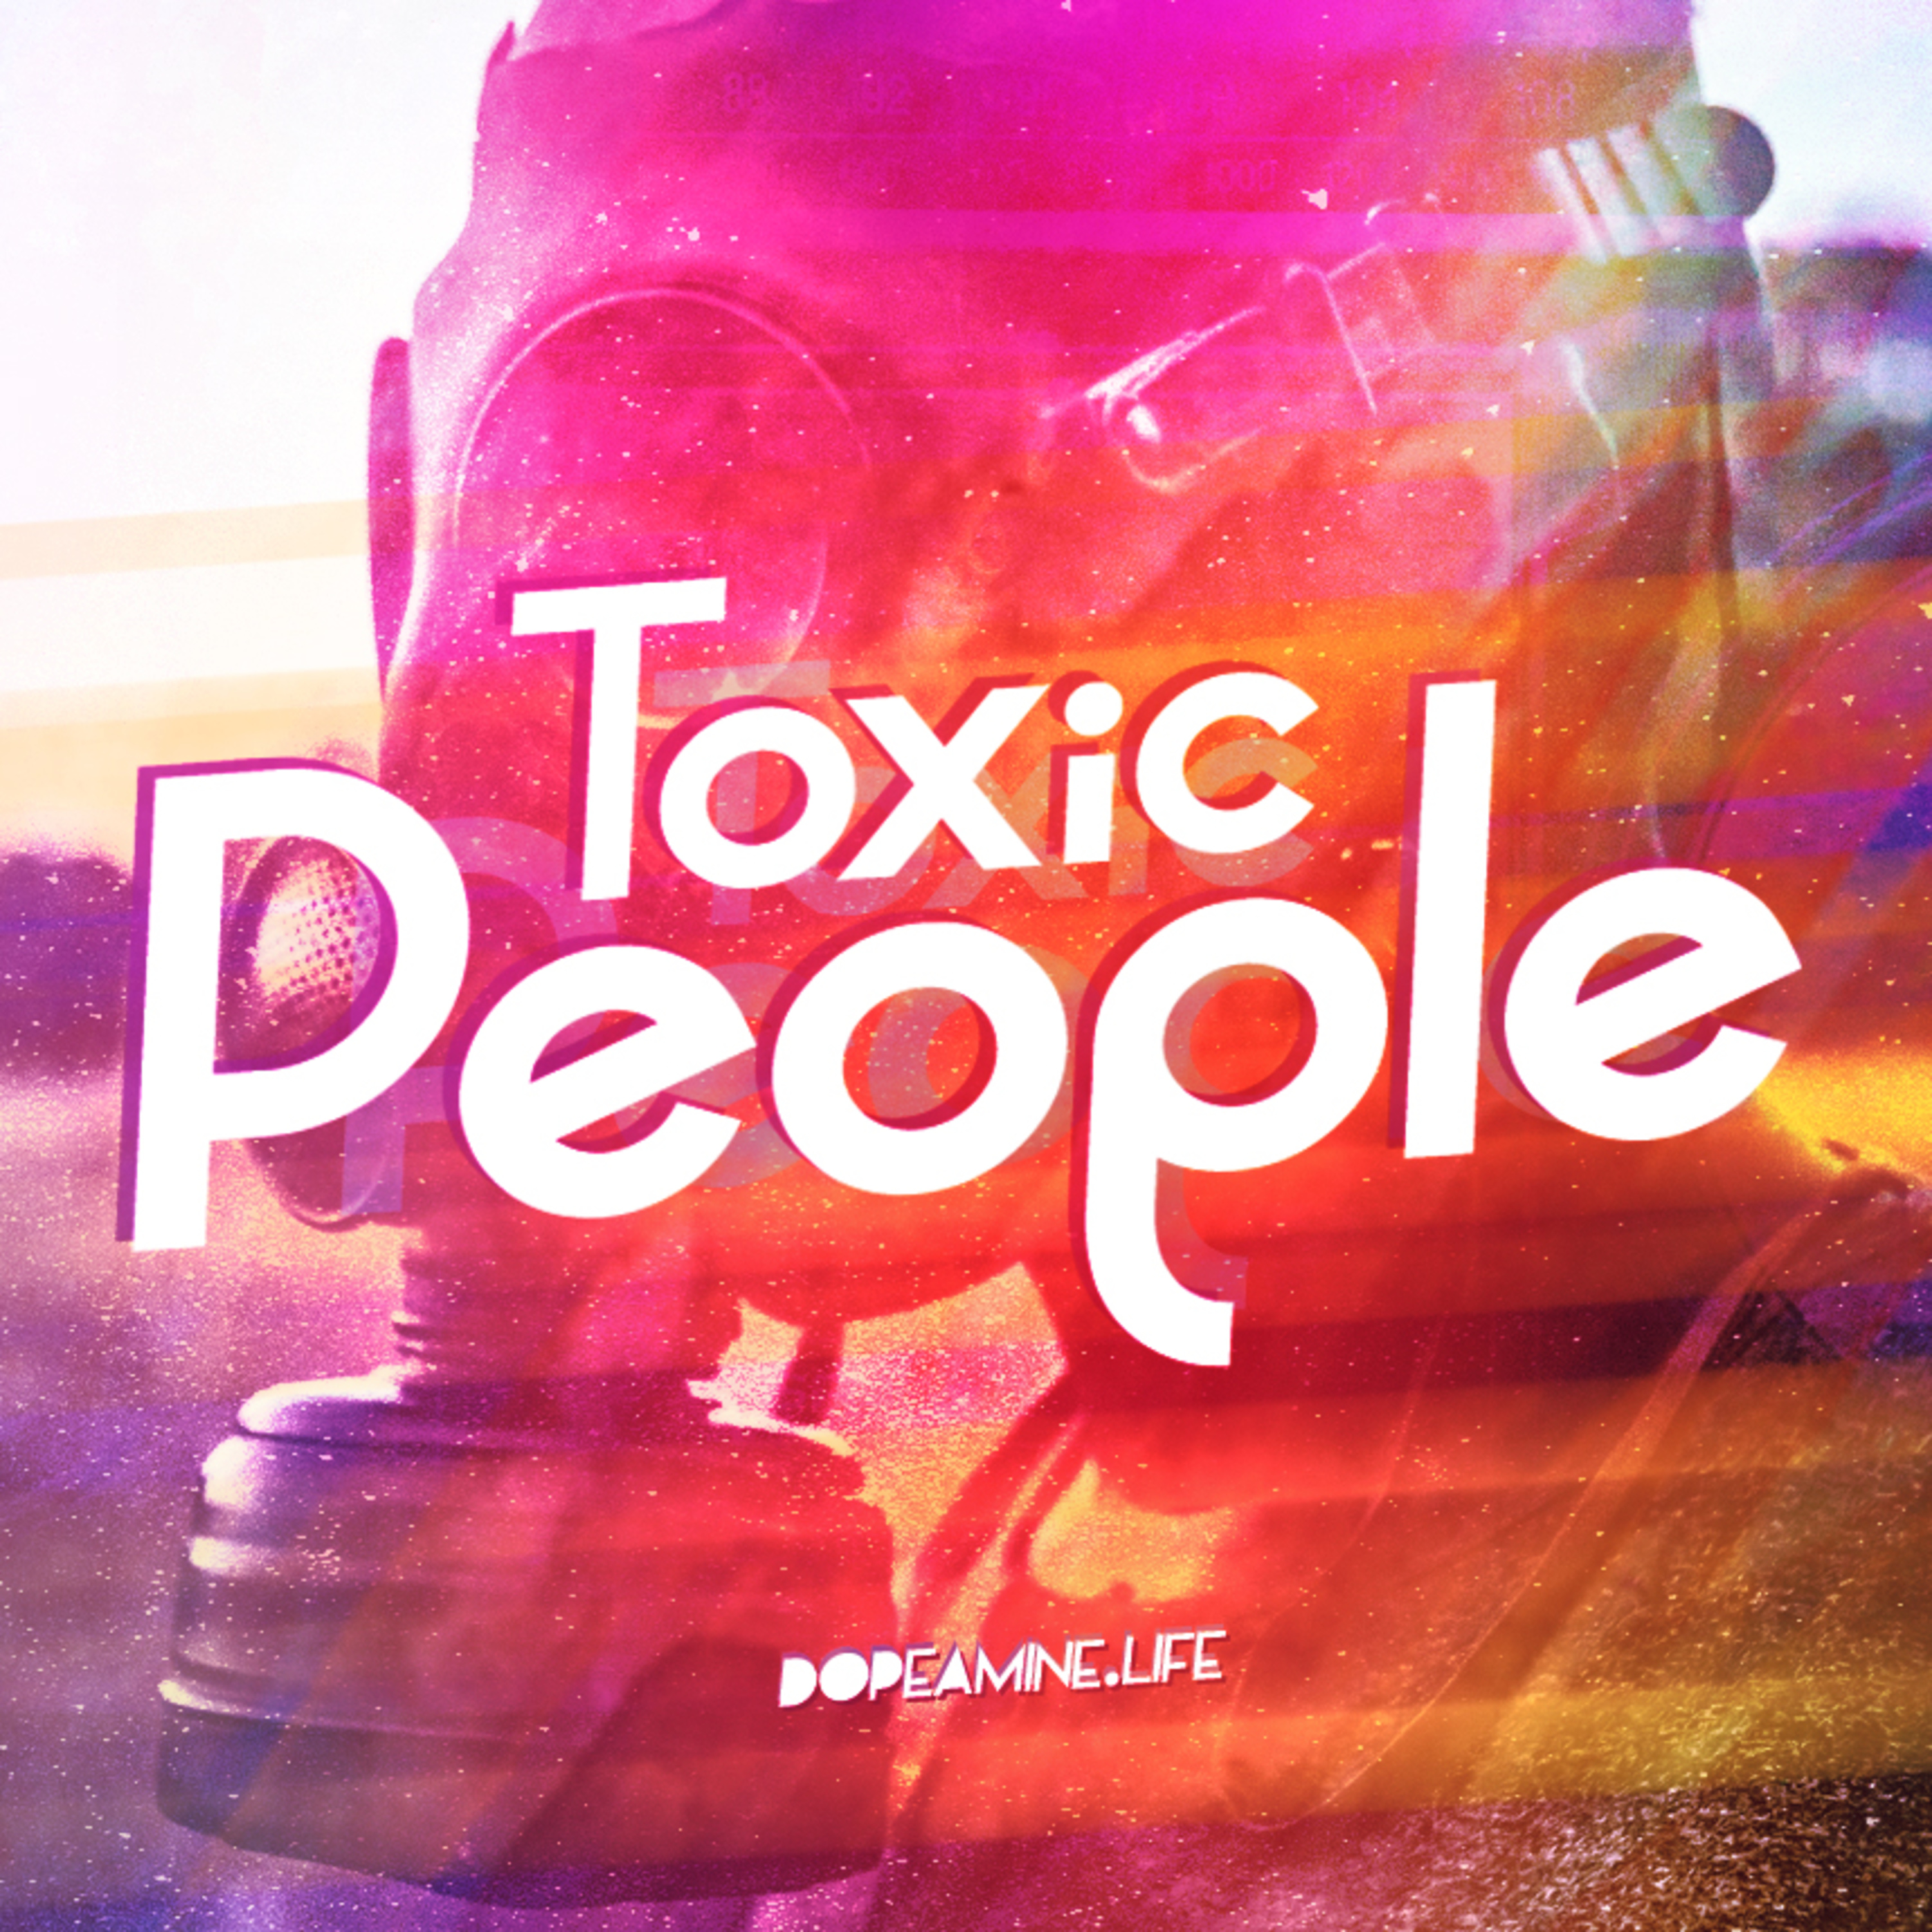 Why We Find Toxic People Interesting